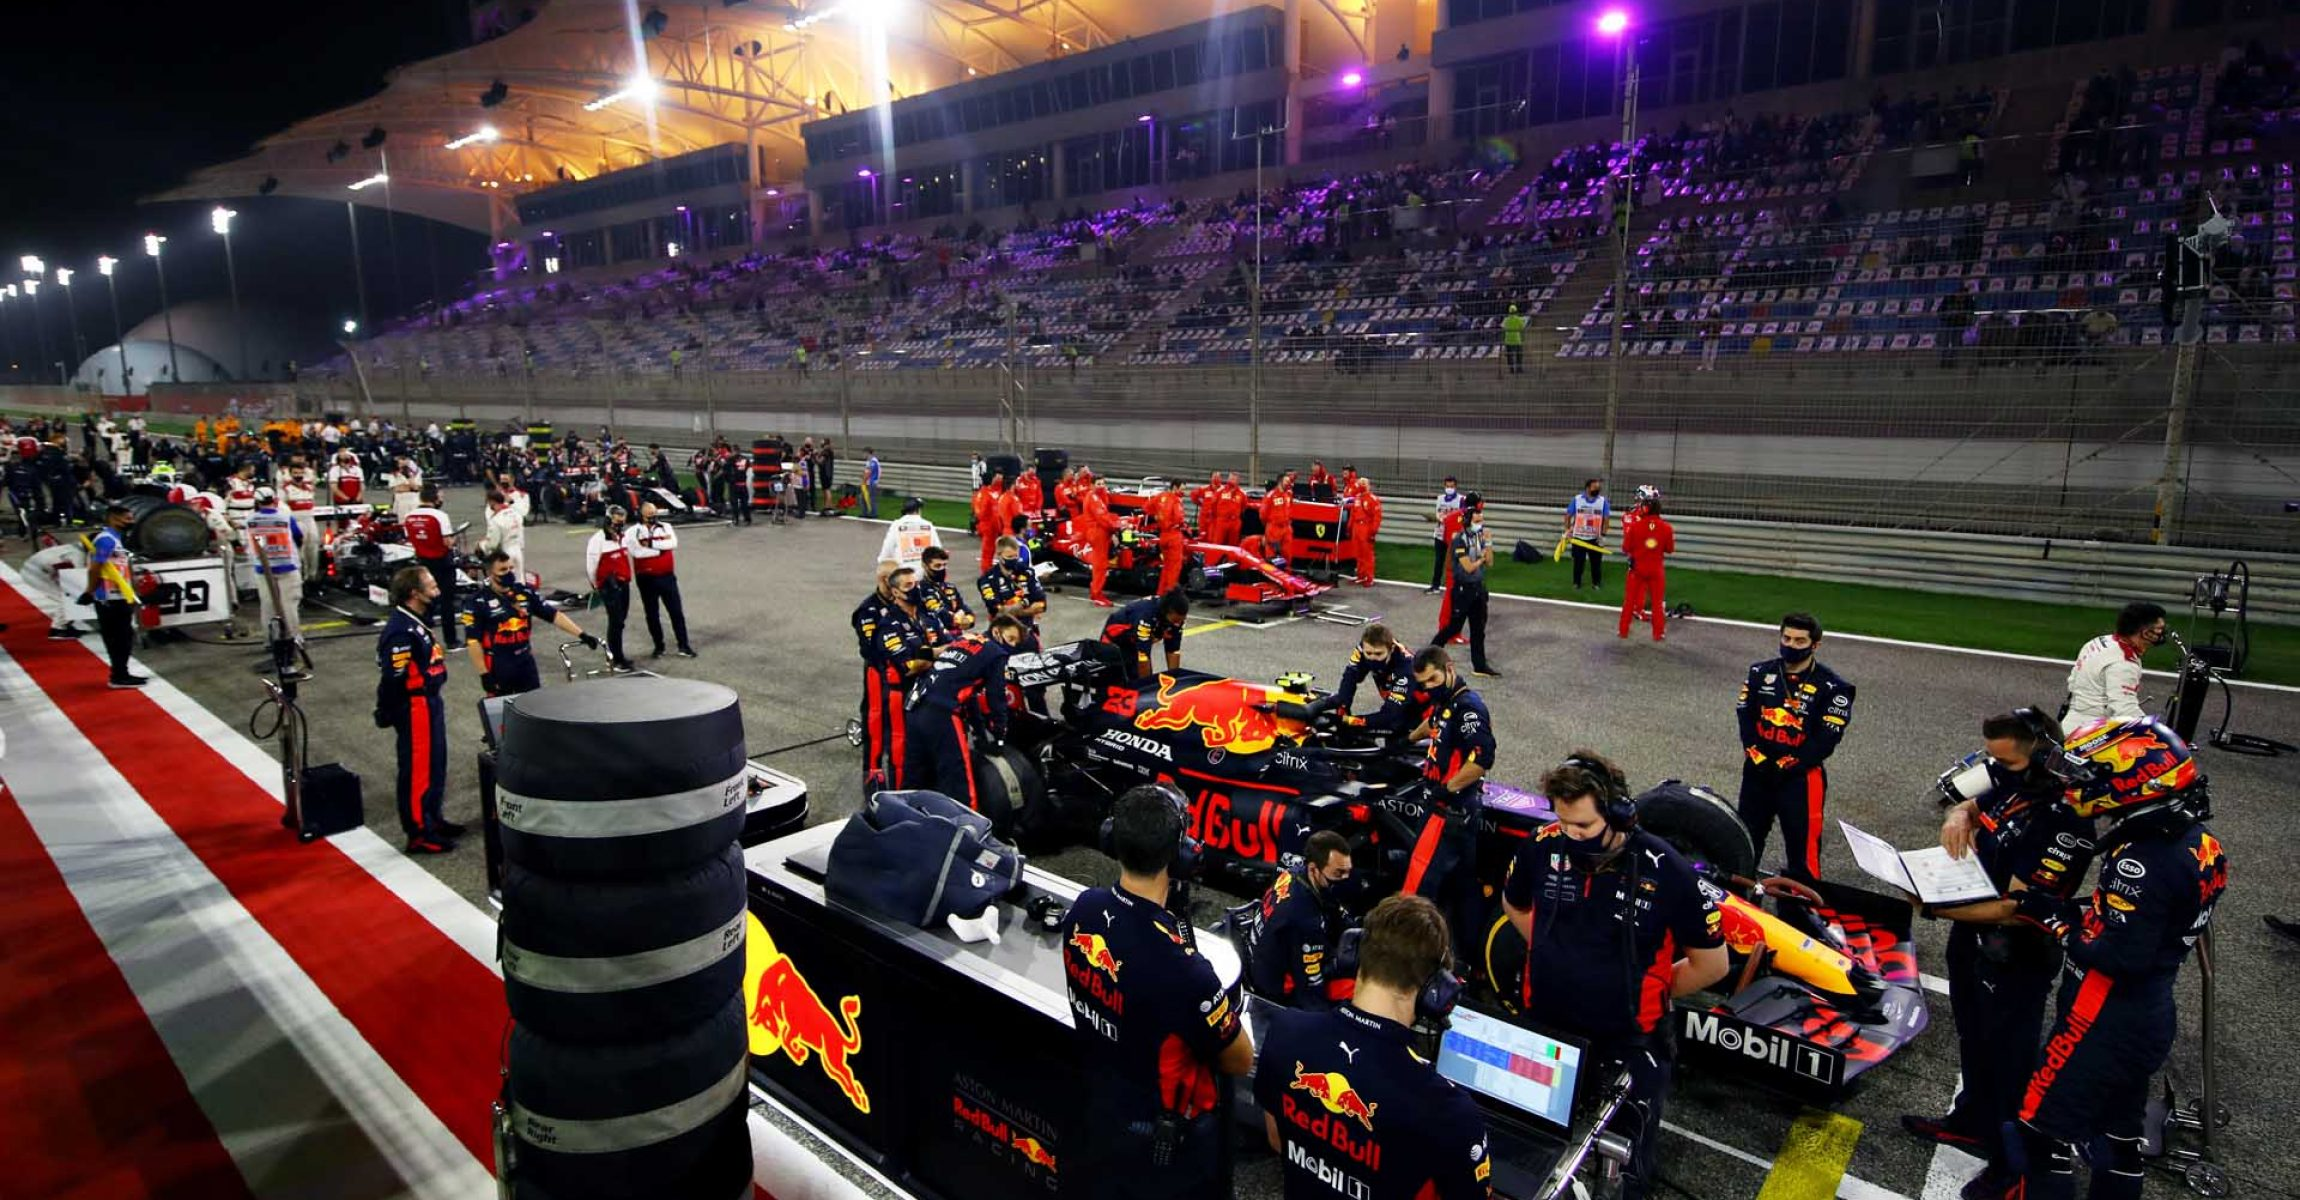 BAHRAIN, BAHRAIN - DECEMBER 06: A general view as Alexander Albon of Thailand and Red Bull Racing prepares to drive on the grid before the F1 Grand Prix of Sakhir at Bahrain International Circuit on December 06, 2020 in Bahrain, Bahrain. (Photo by Mark Thompson/Getty Images)